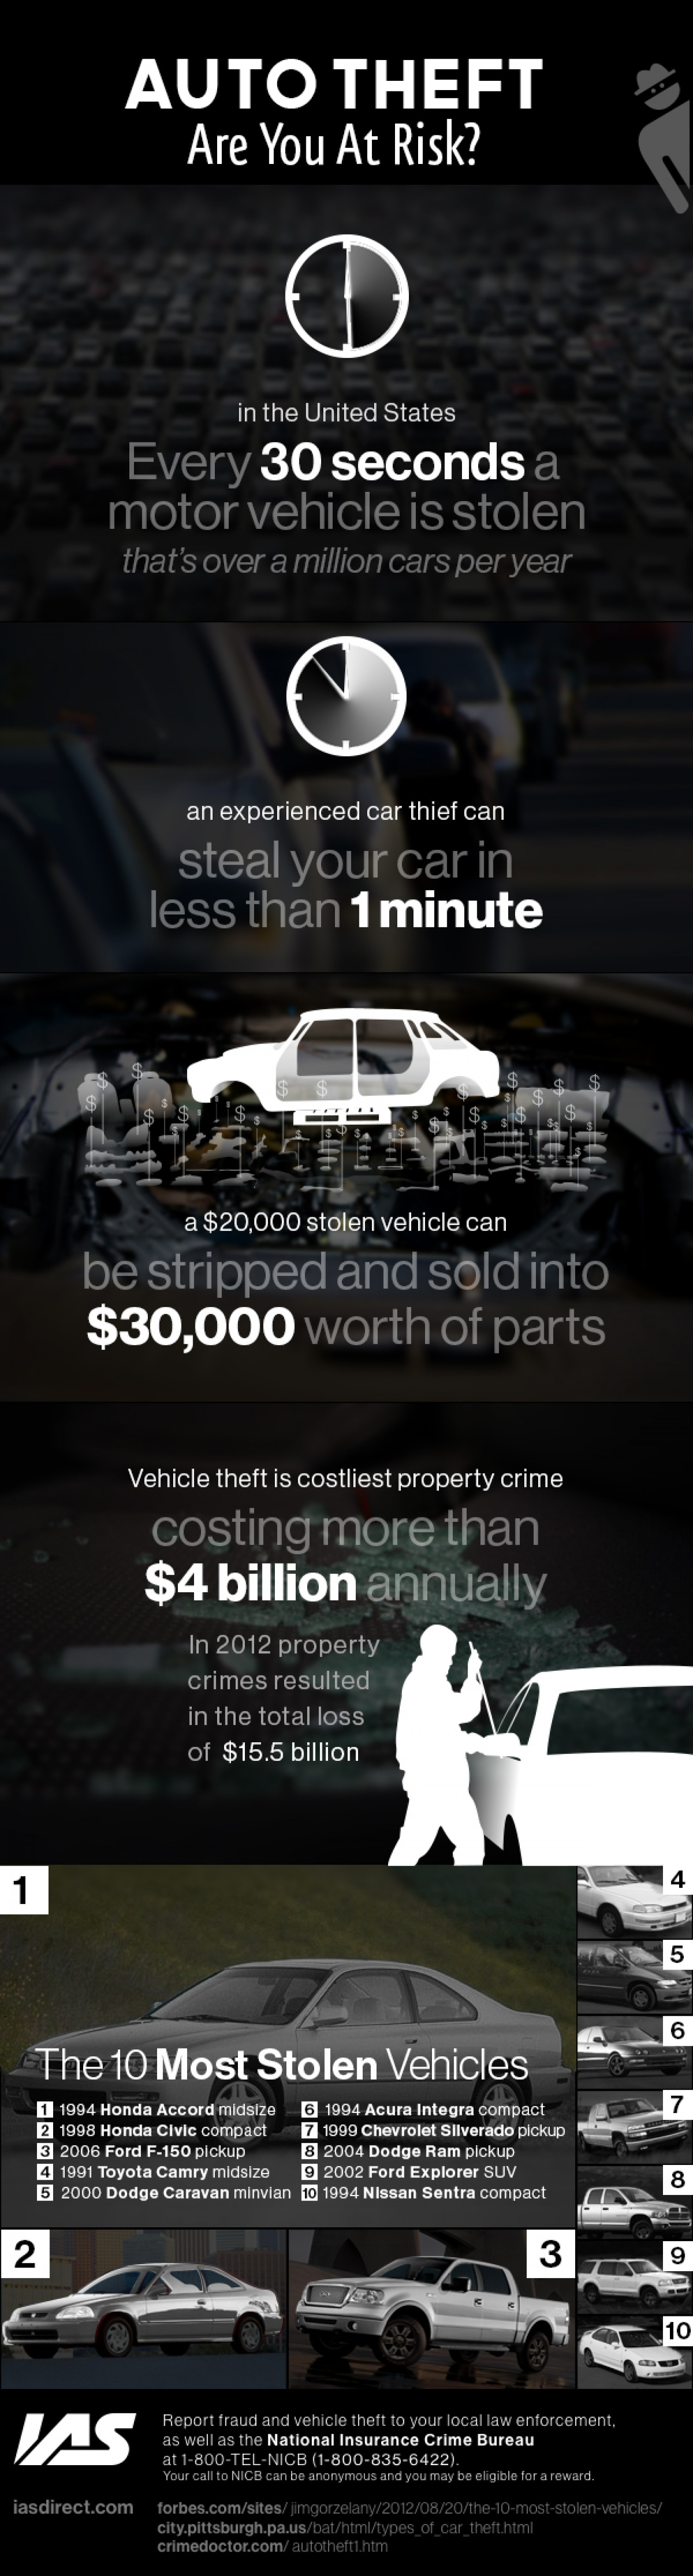 Auto Theft: Are You at Risk? Infographic